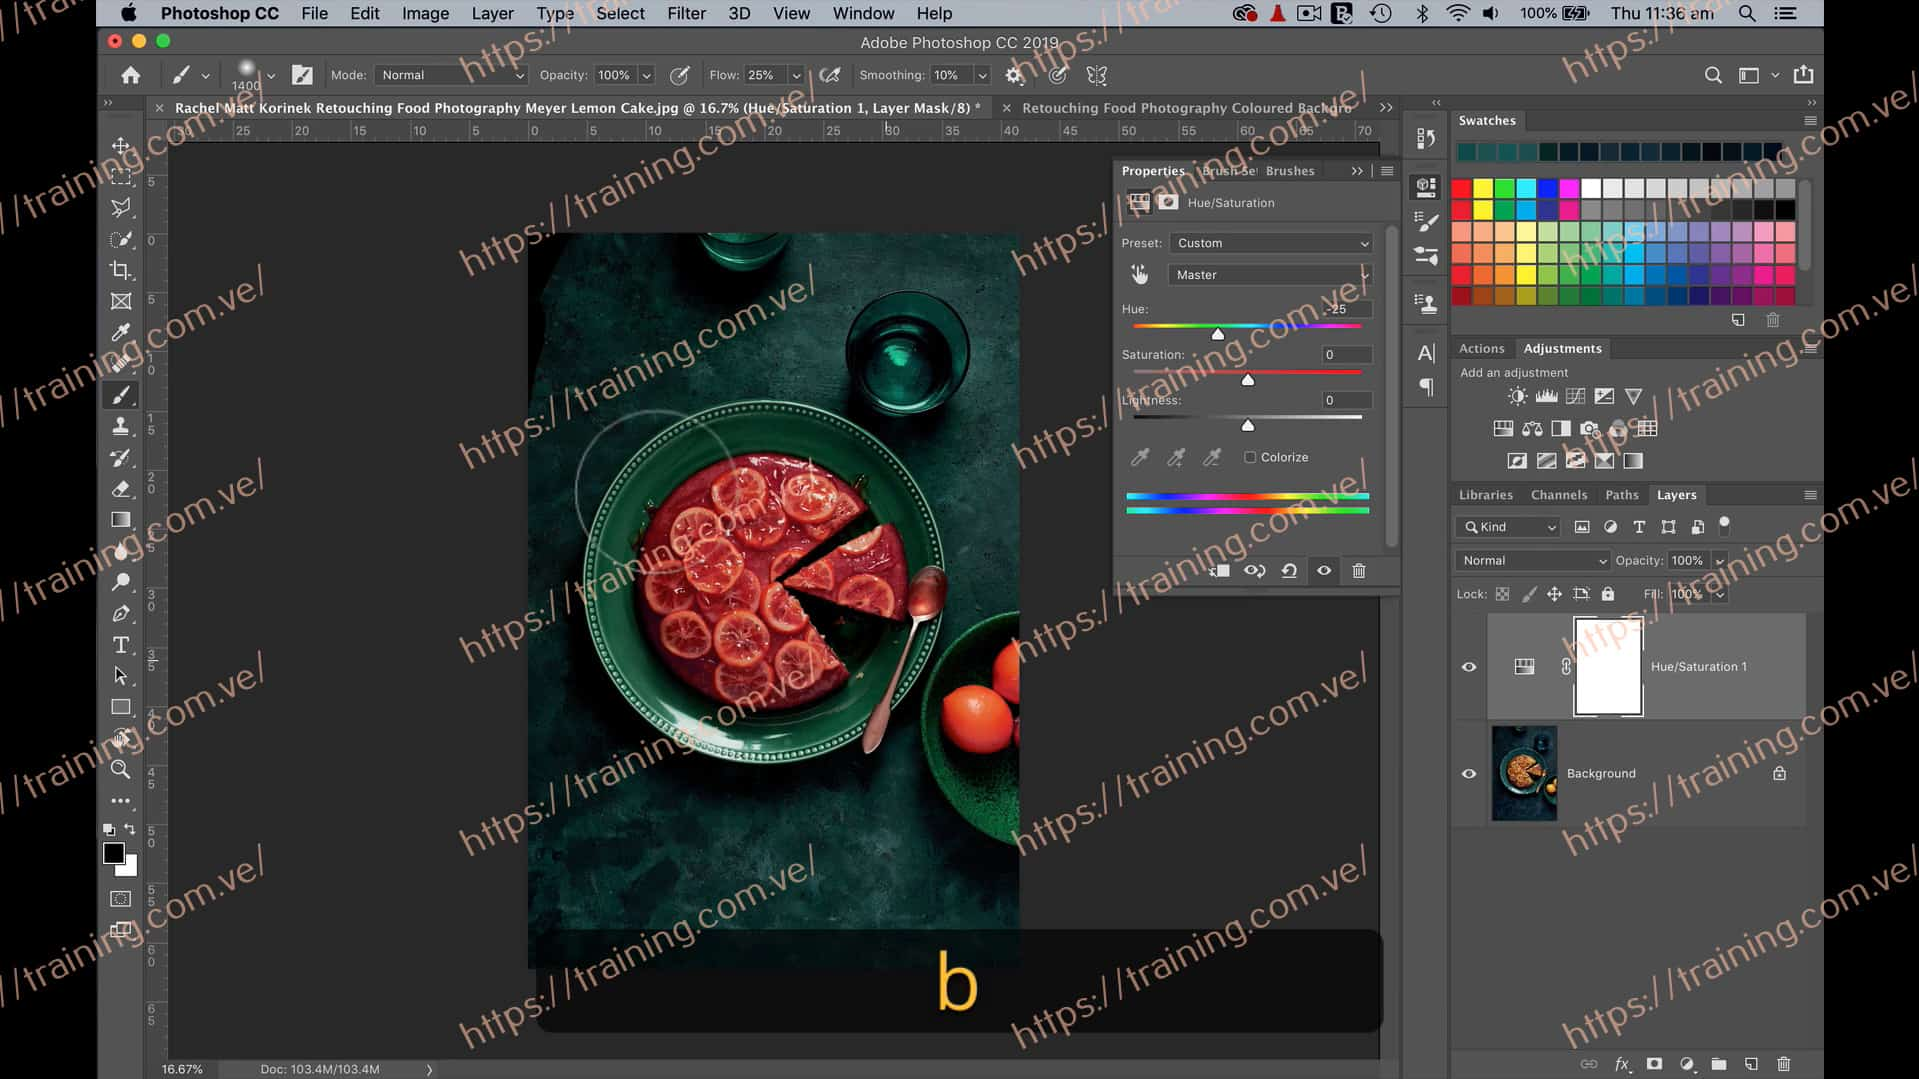 Retouching Food Photography by Rachel + Matt Korinek Offer